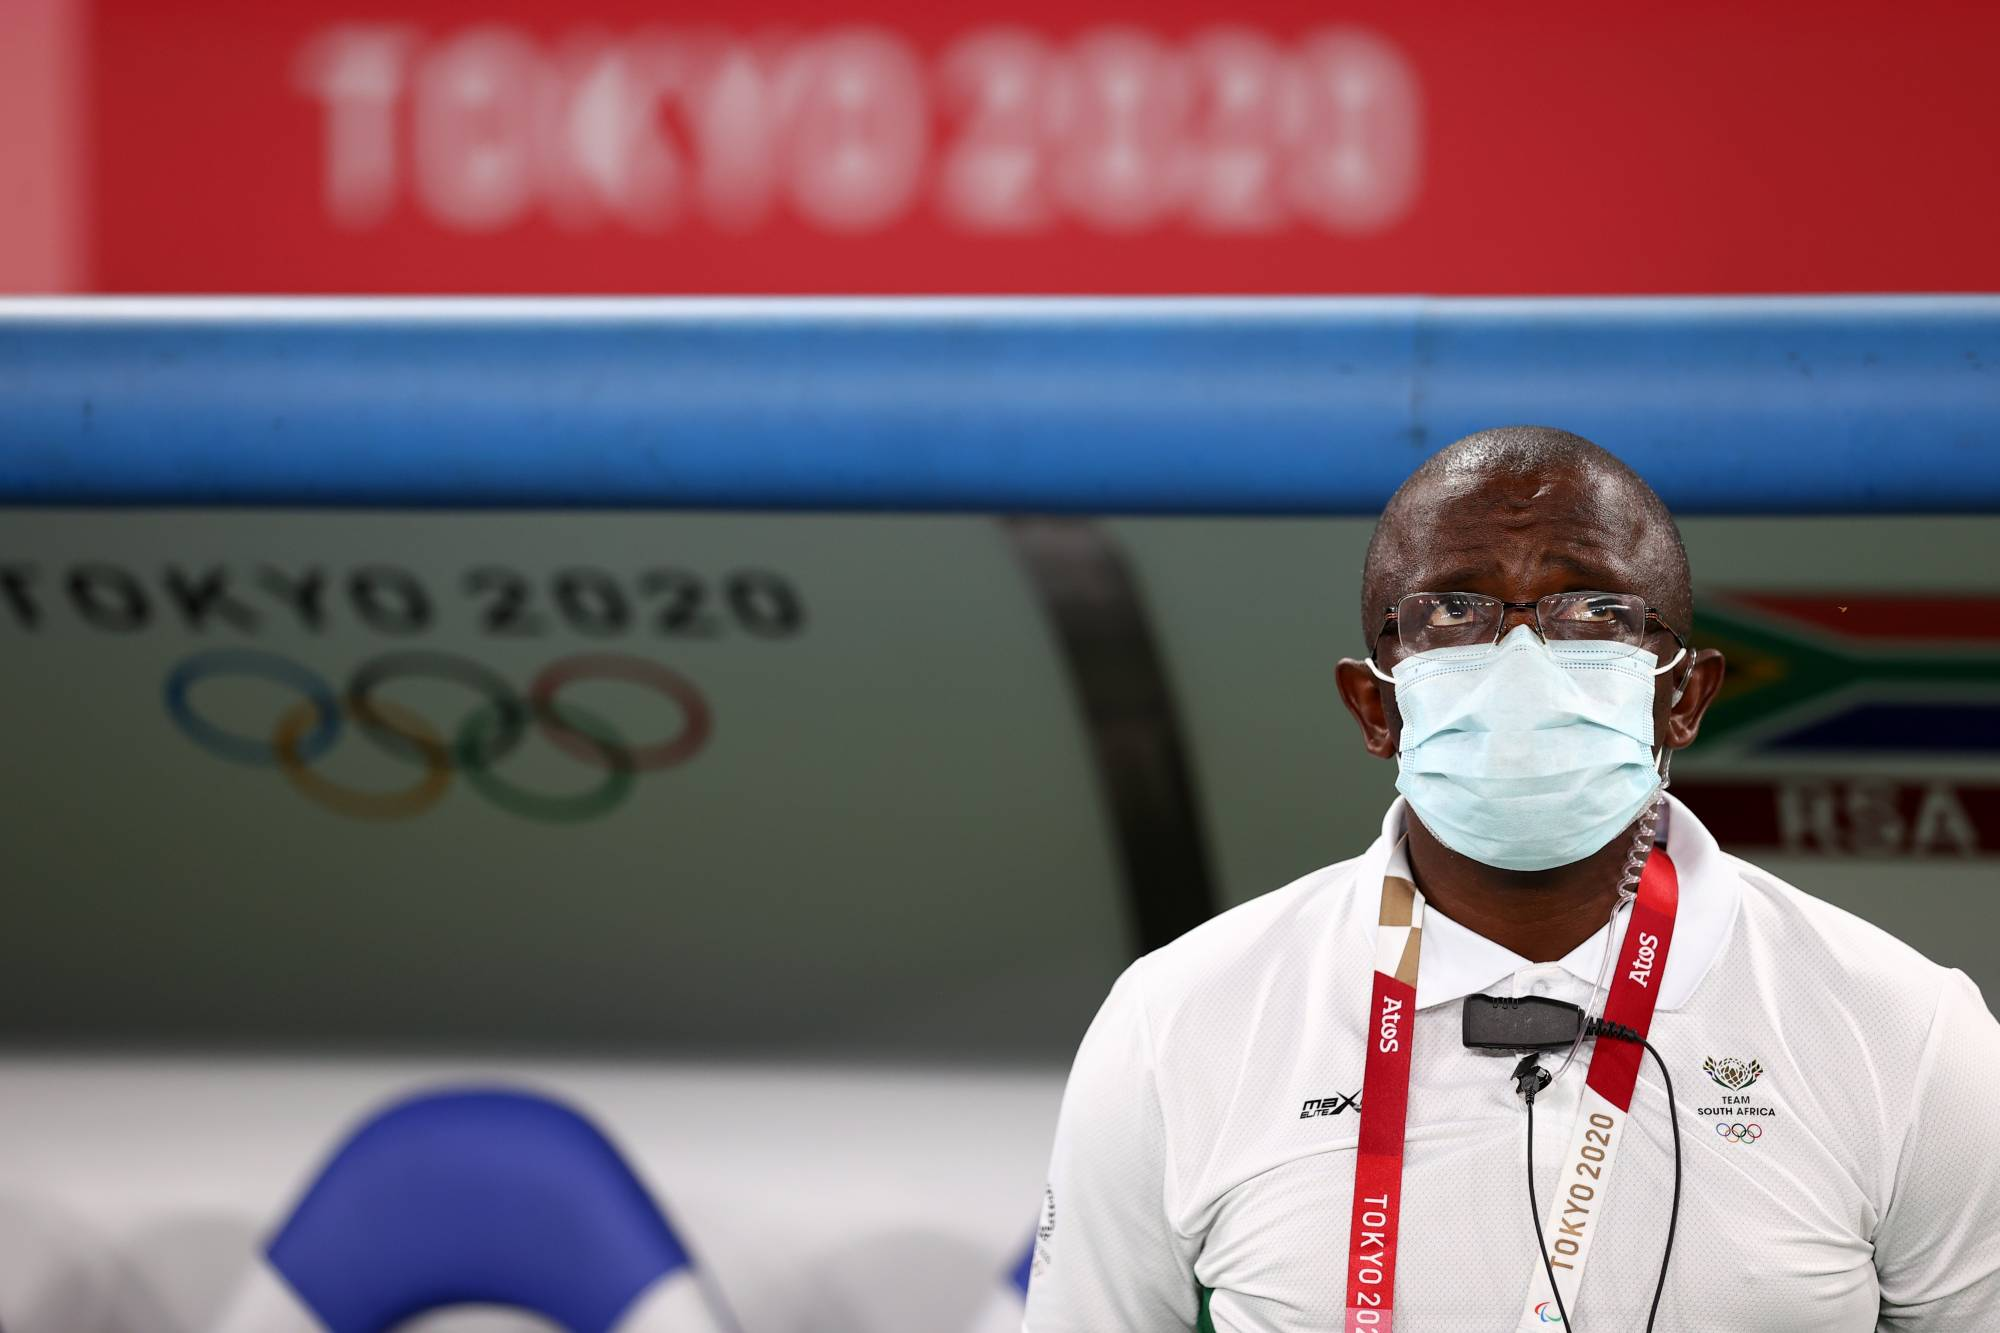 South Africa coach David Notoane before the match on Thursday at Tokyo Stadium. | REUTERS